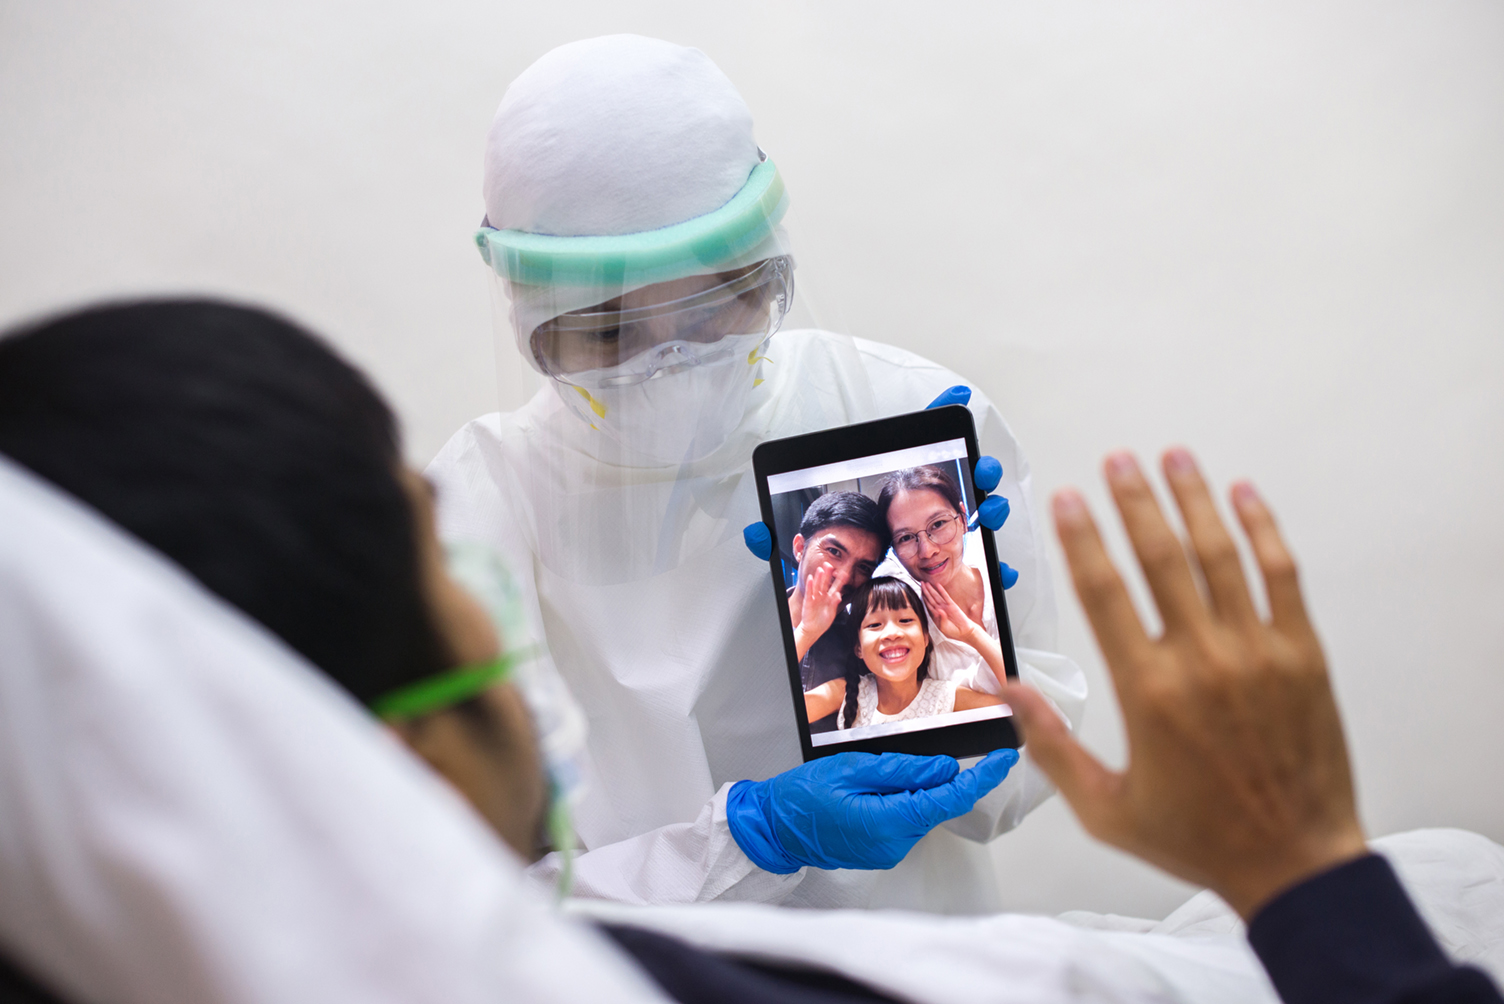 Nurse holding tablet with video call